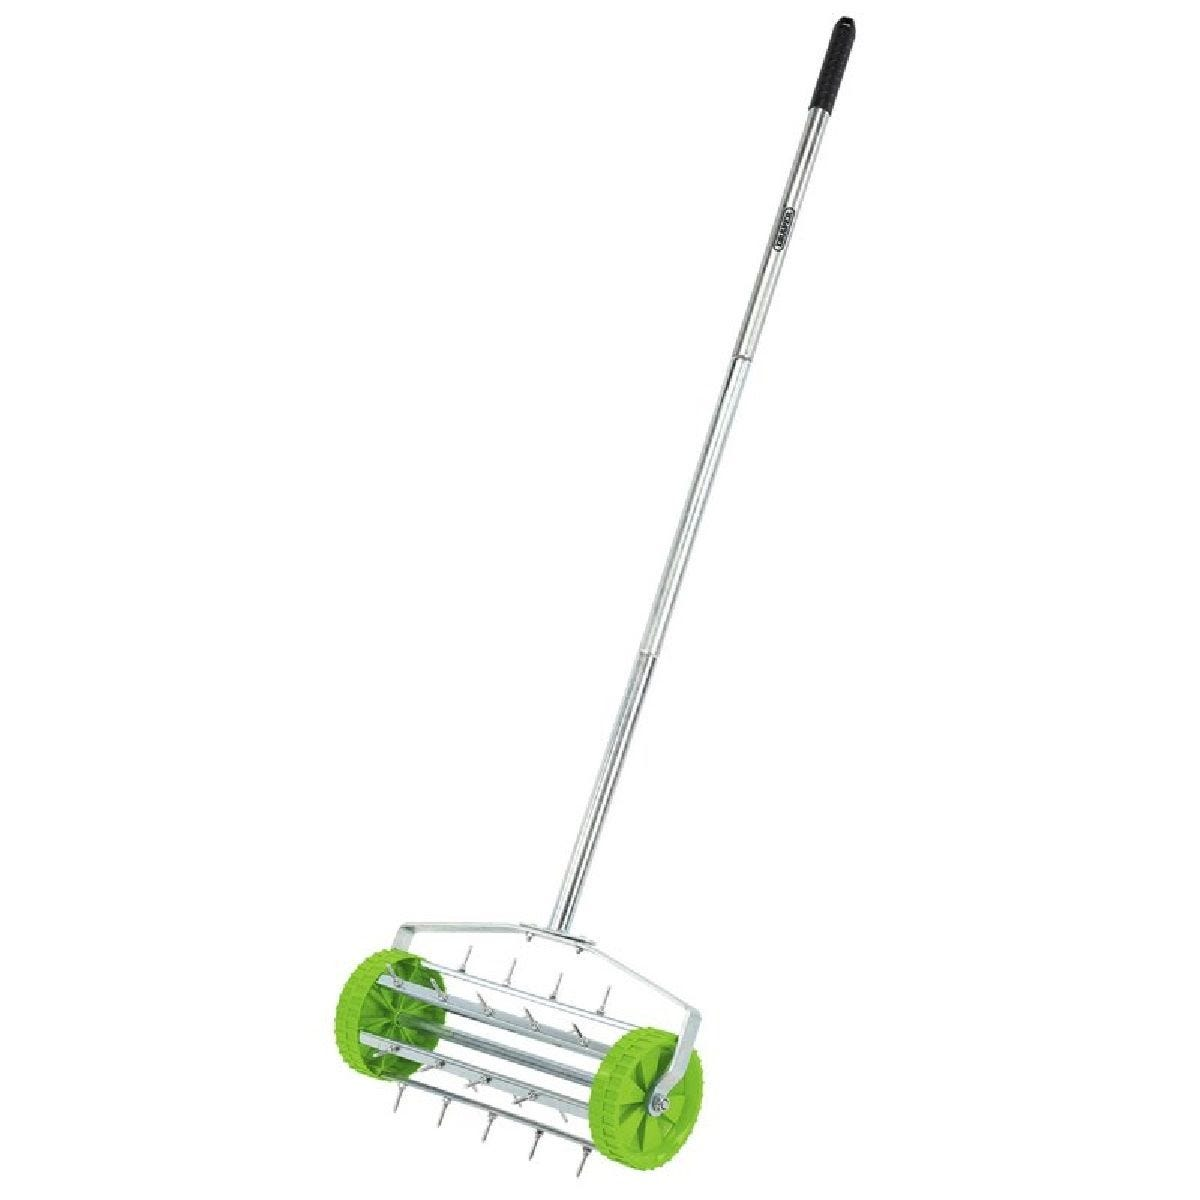 Draper Rolling Lawn Aerator - 450mm Spiked Drum